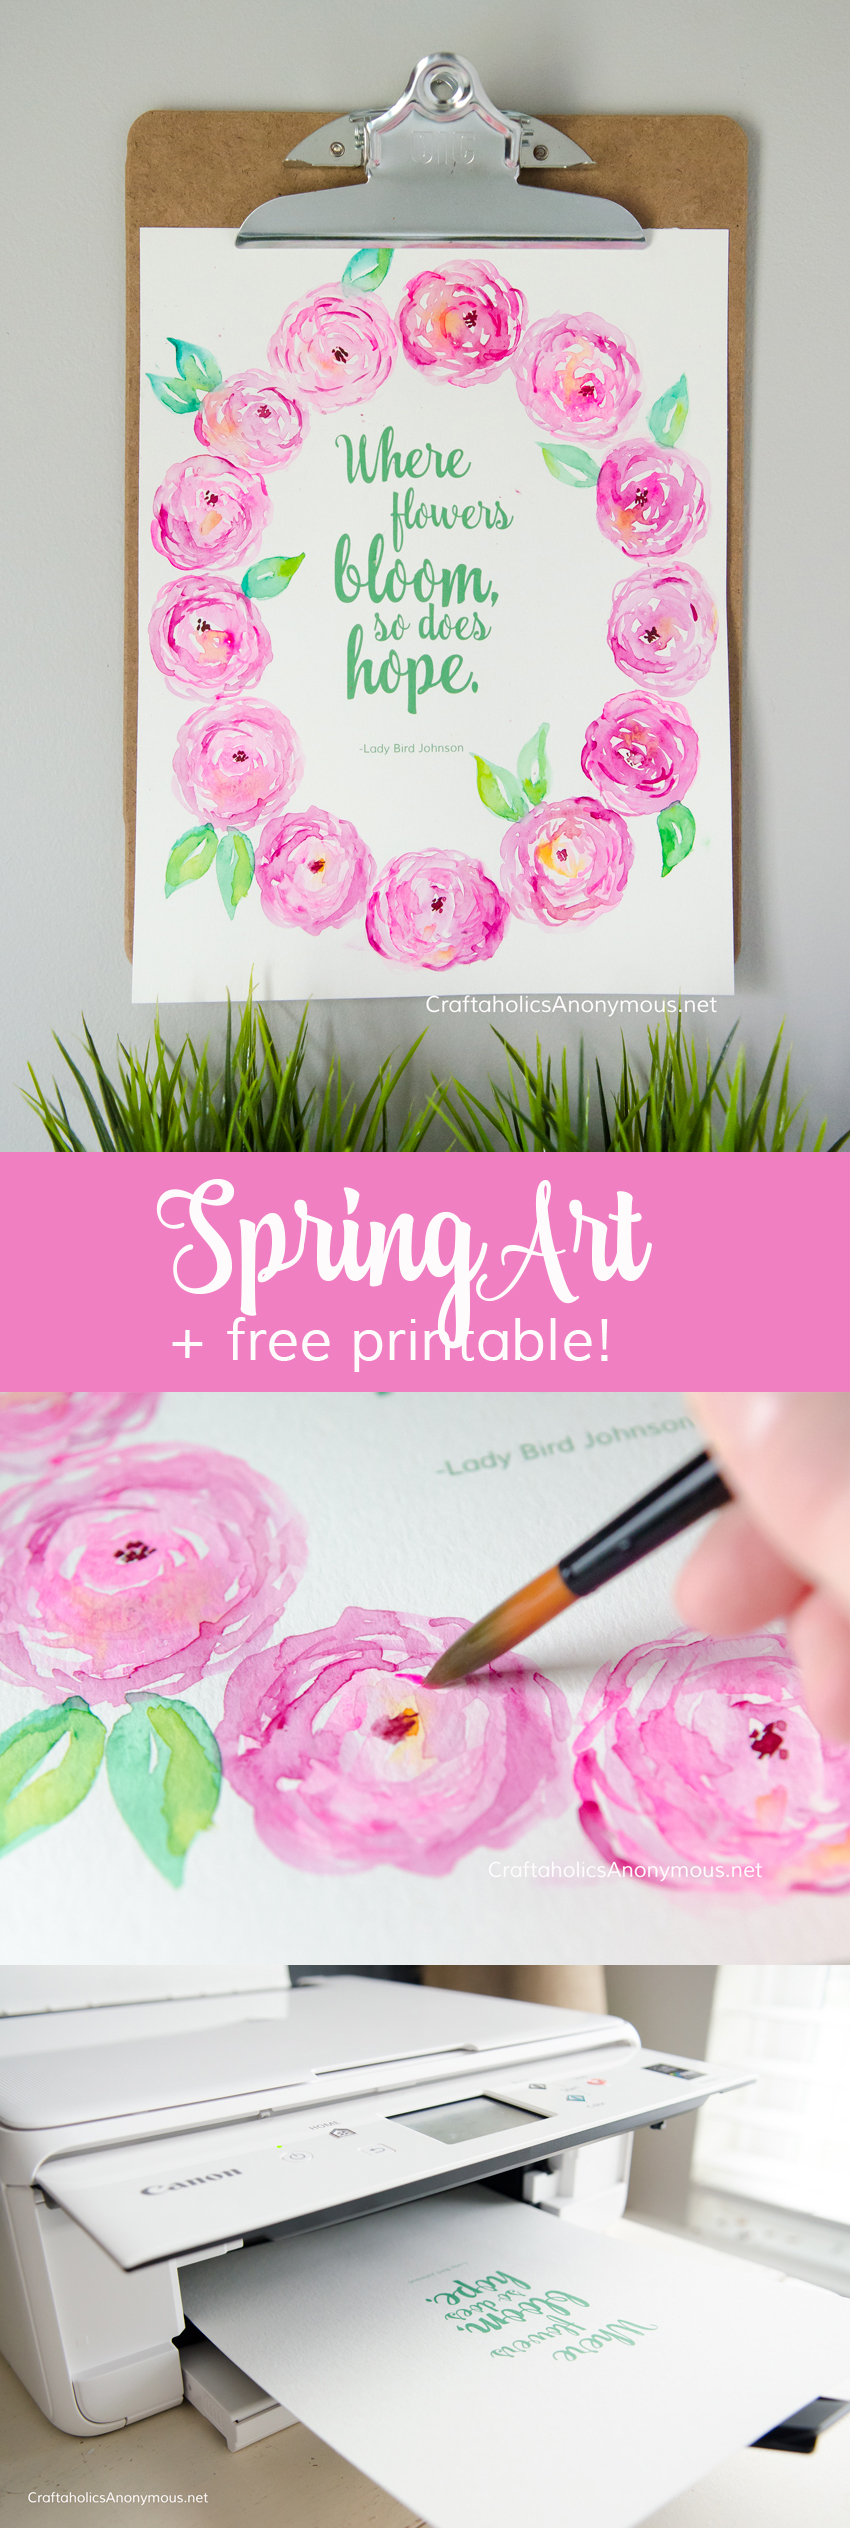 DIY Spring watercolor artwork :: Download the free printable then add watercolor flowers